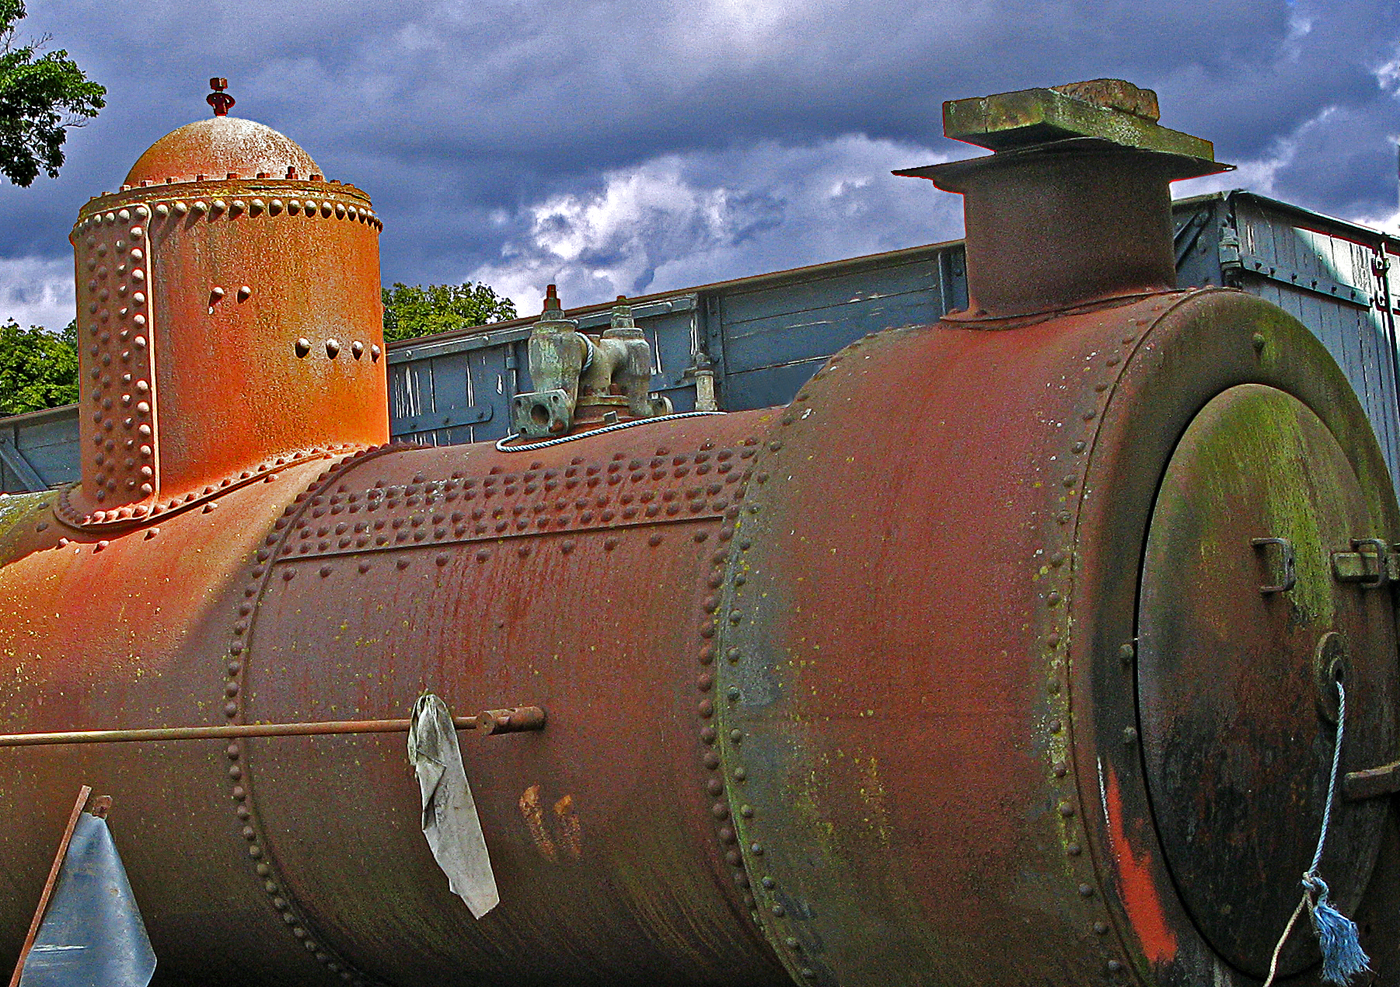 WAITING RESTORATION by Jim Morrissey